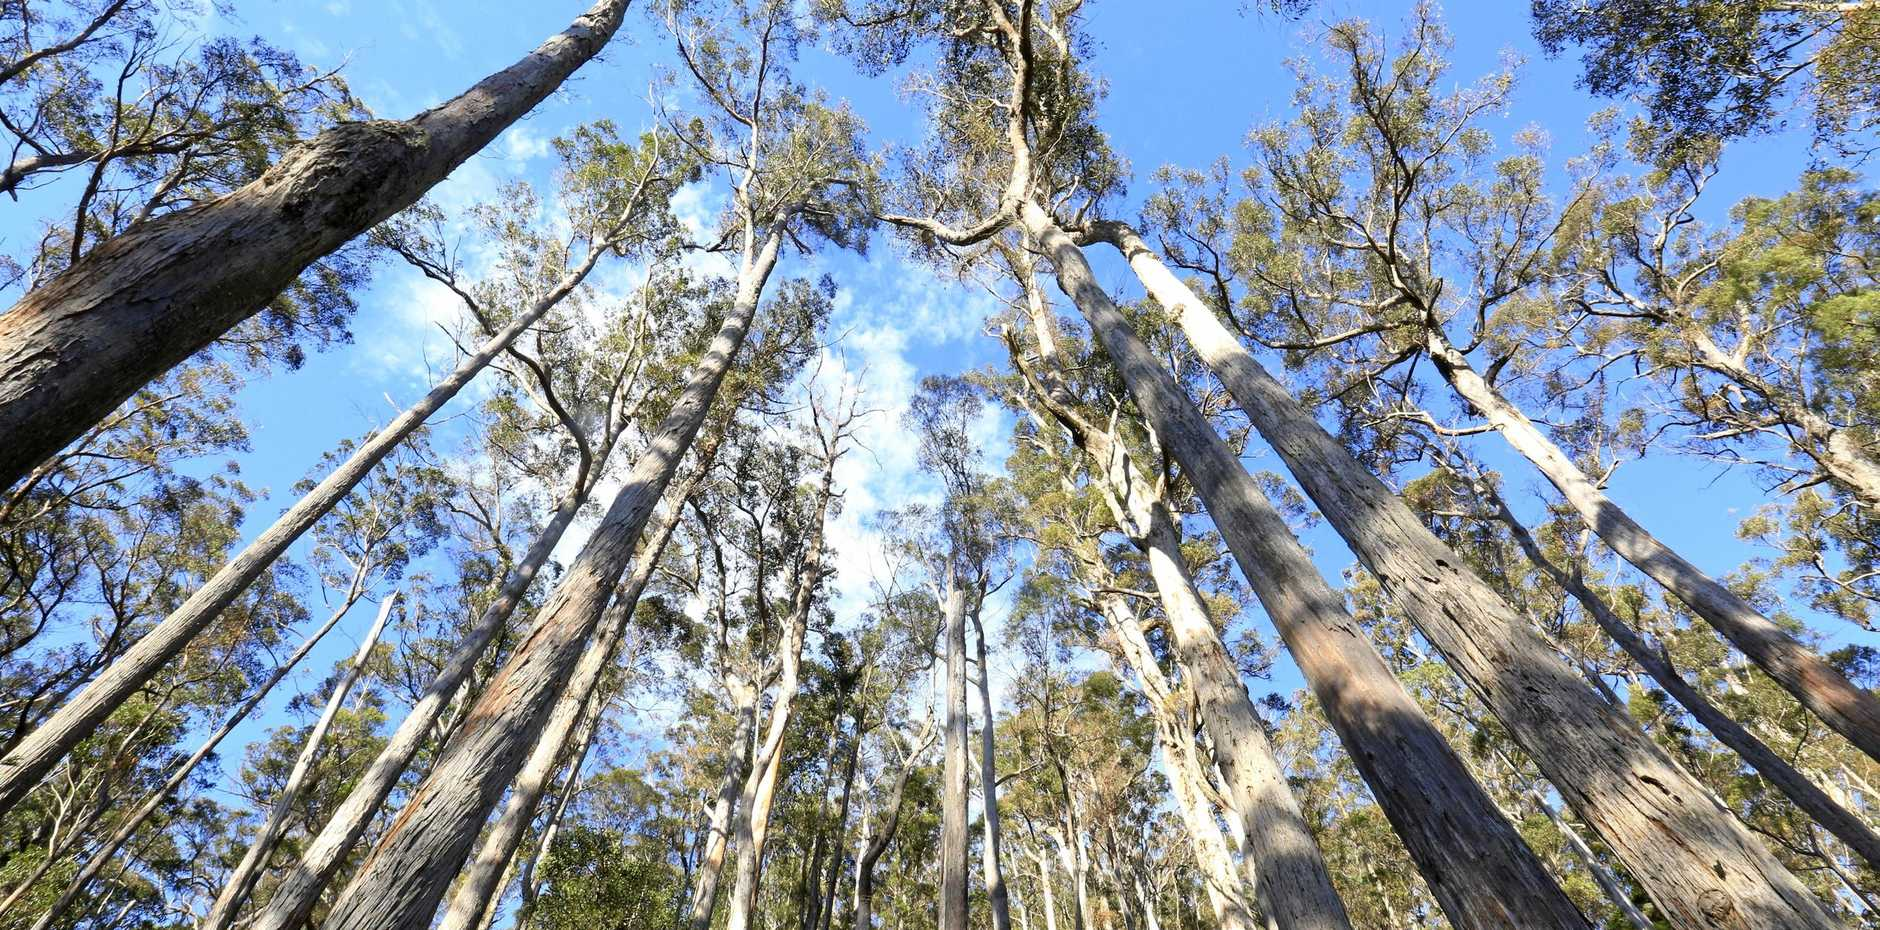 The draft Coastal Integrated Forestry Operations Approvals, released last month, is open for consultation until the end of the month.